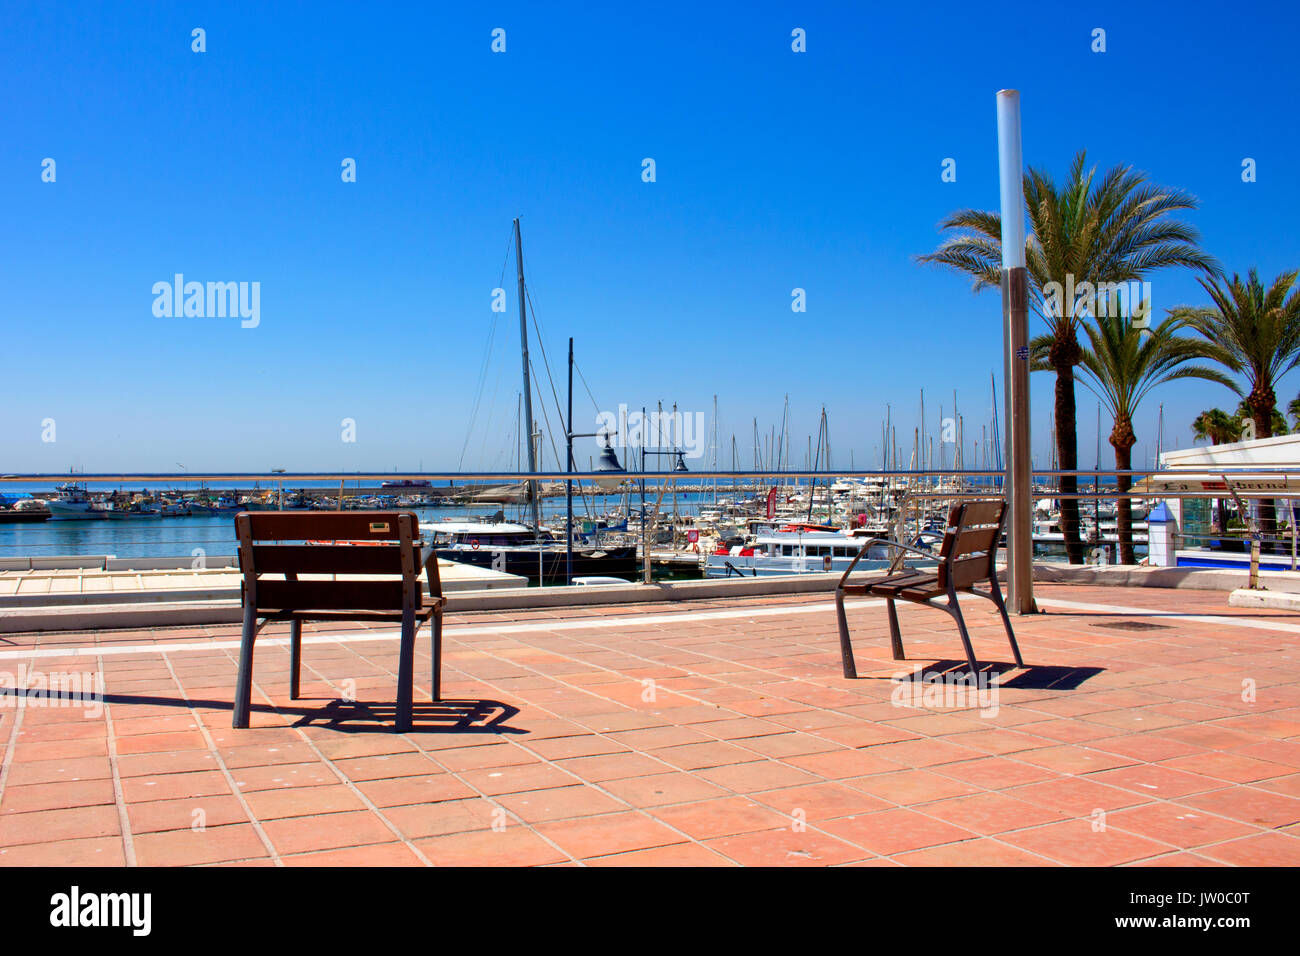 Port. Estepona city, Costa del Sol, Andalusia, Spain. 24 july 2017. - Stock Image